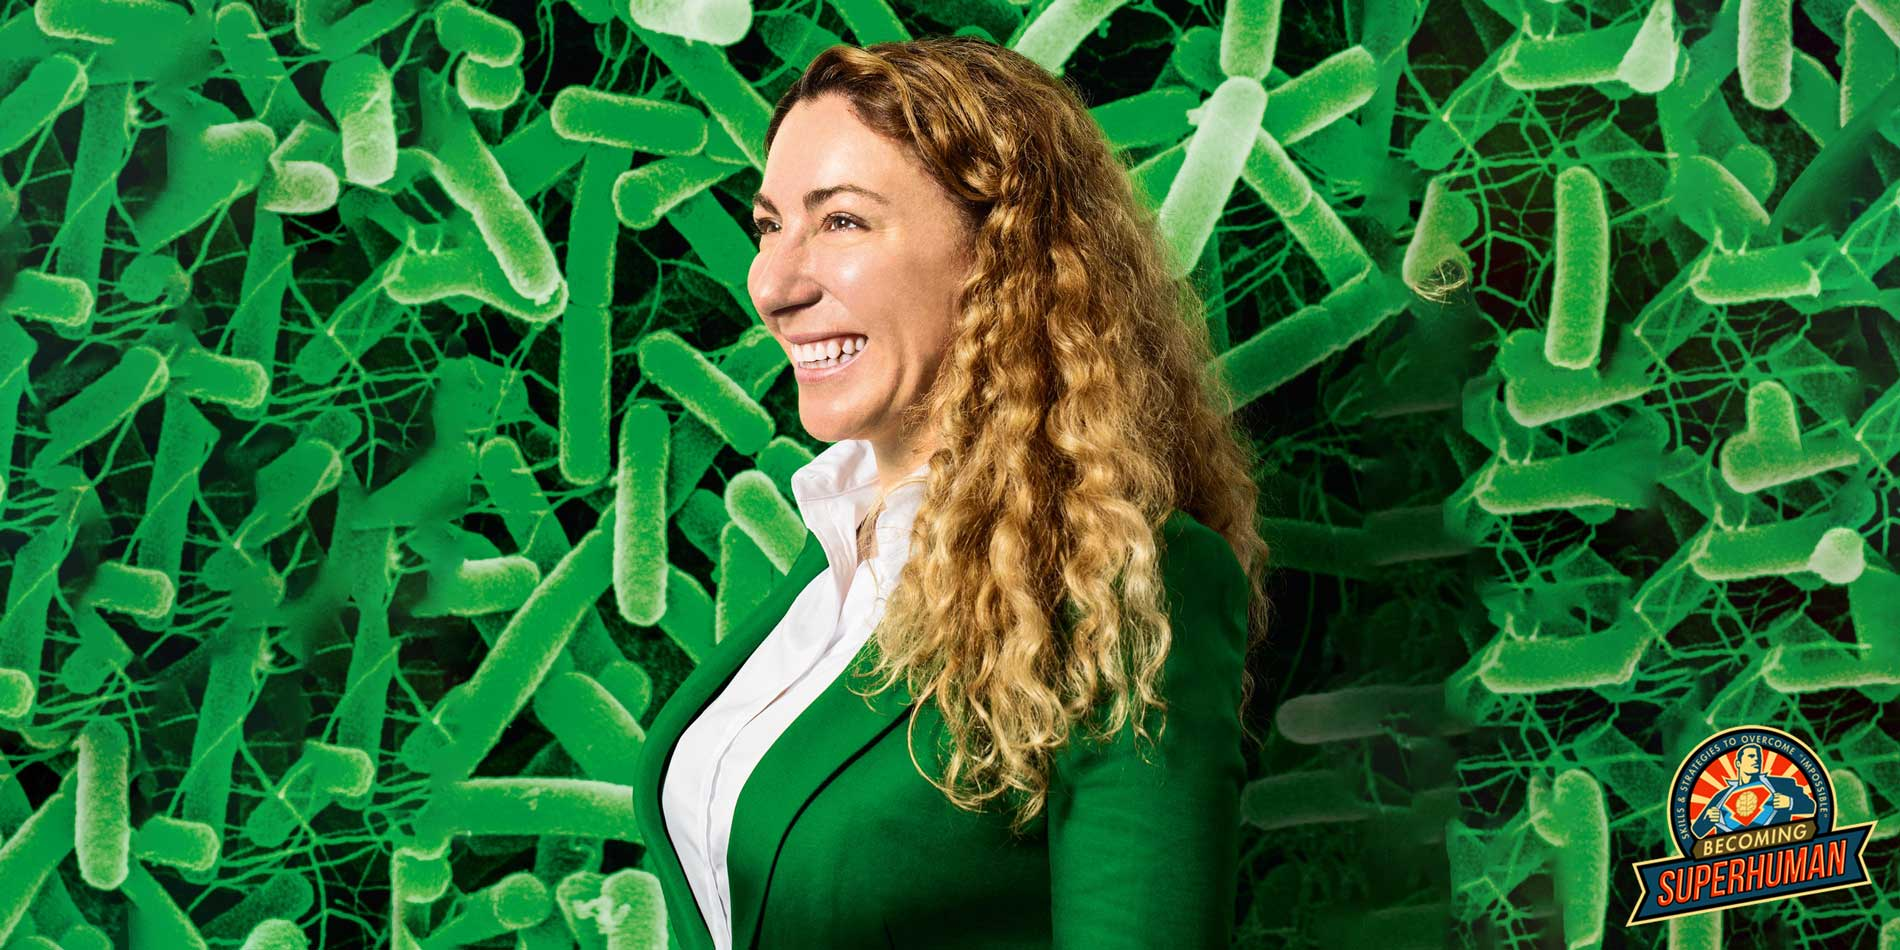 Jessica Richman is the CEO of uBiome, a company pioneering the way in at-home micro biome testing.